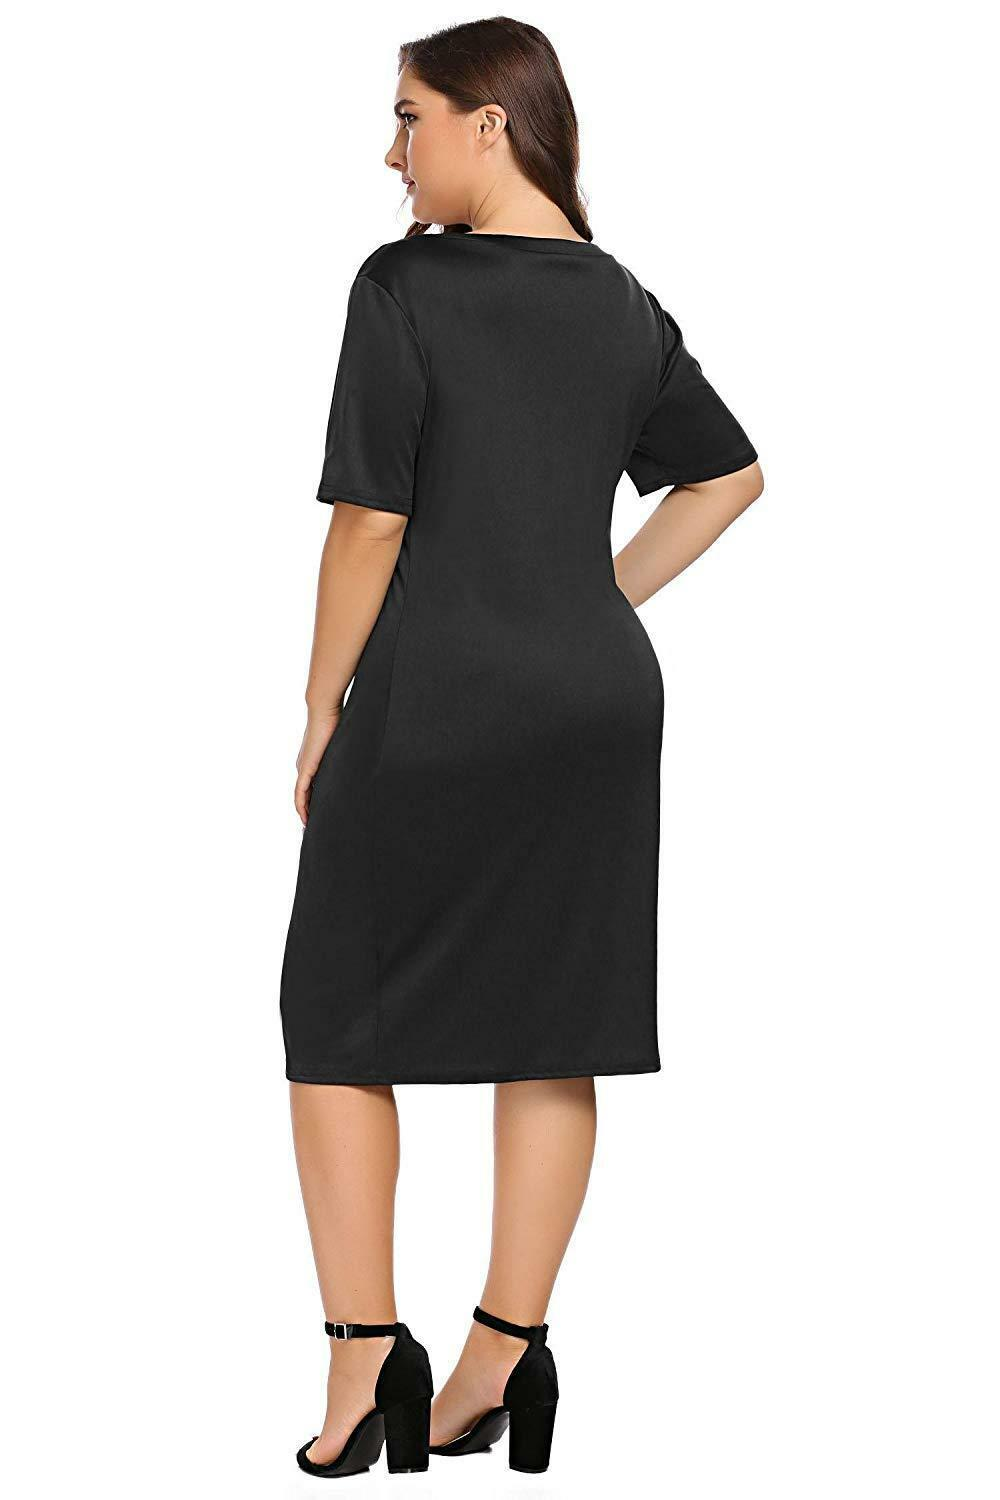 Zeagoo Women Plus Size Loose Fit Short Sleeve O-Neck Casual Midi Dress image 11